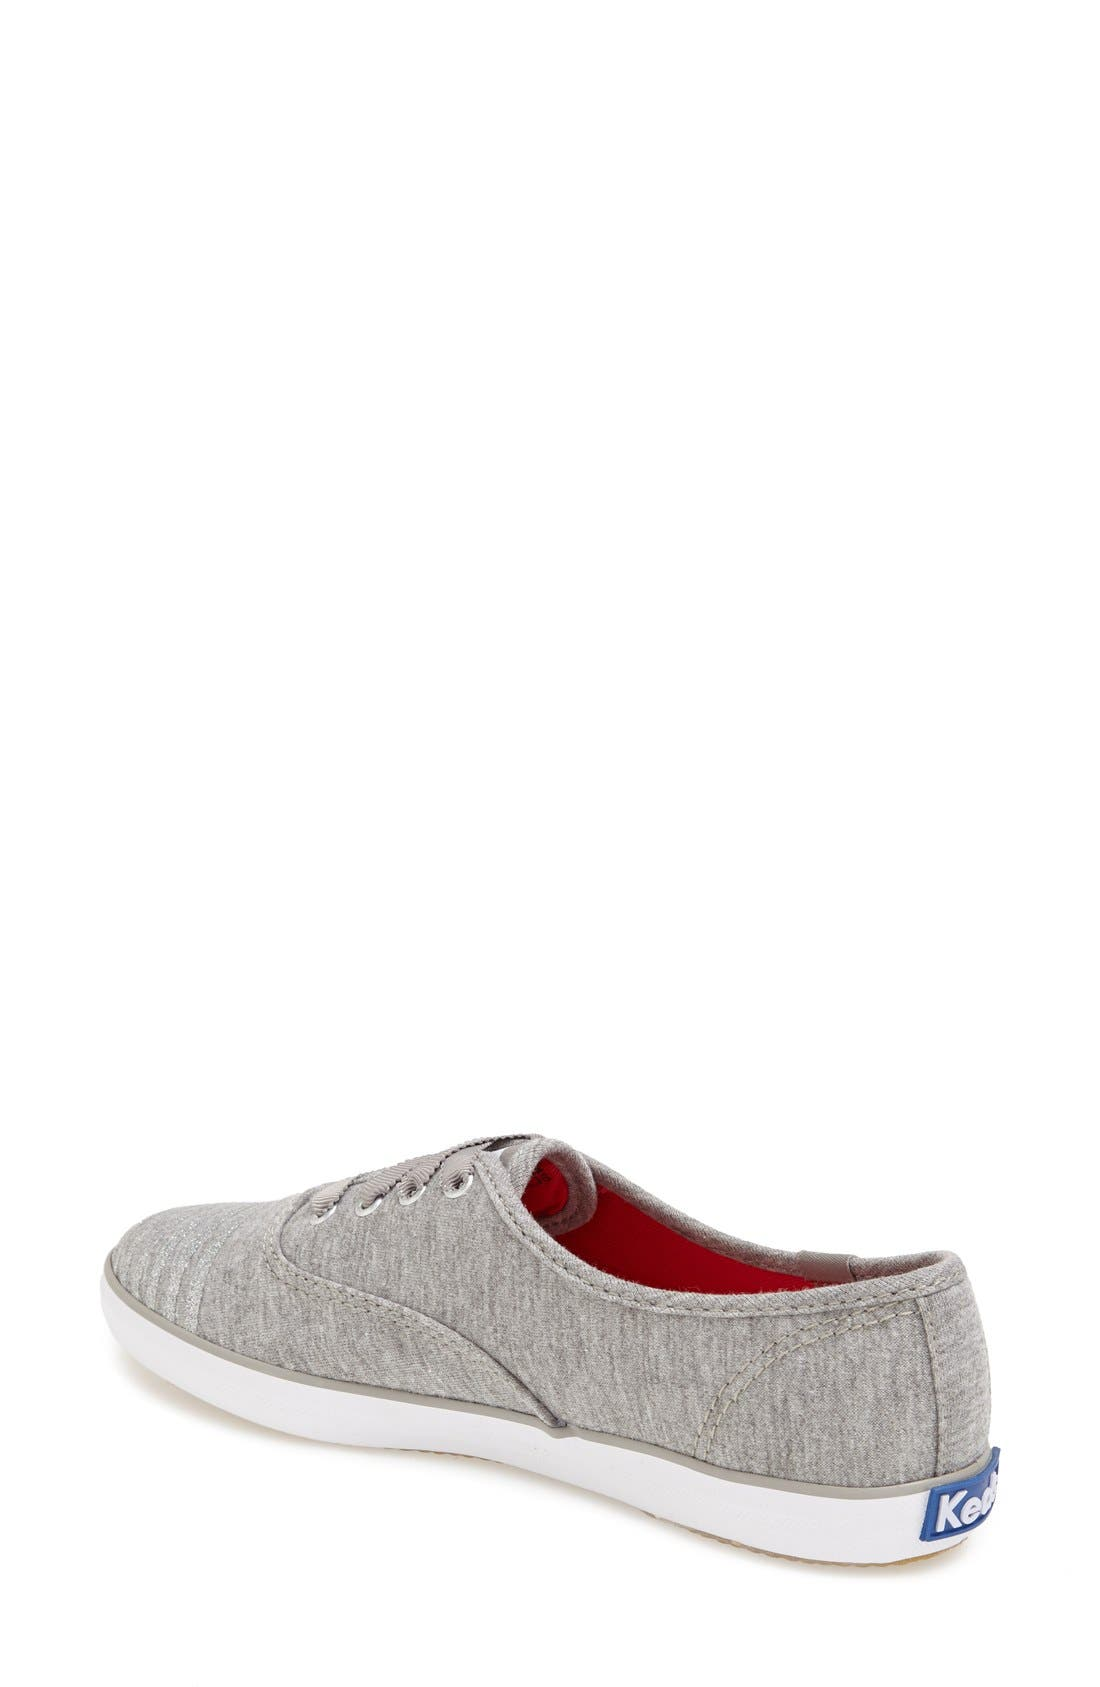 Alternate Image 2  - Keds® 'Champion - Jersey Glitter' Sneaker (Women)